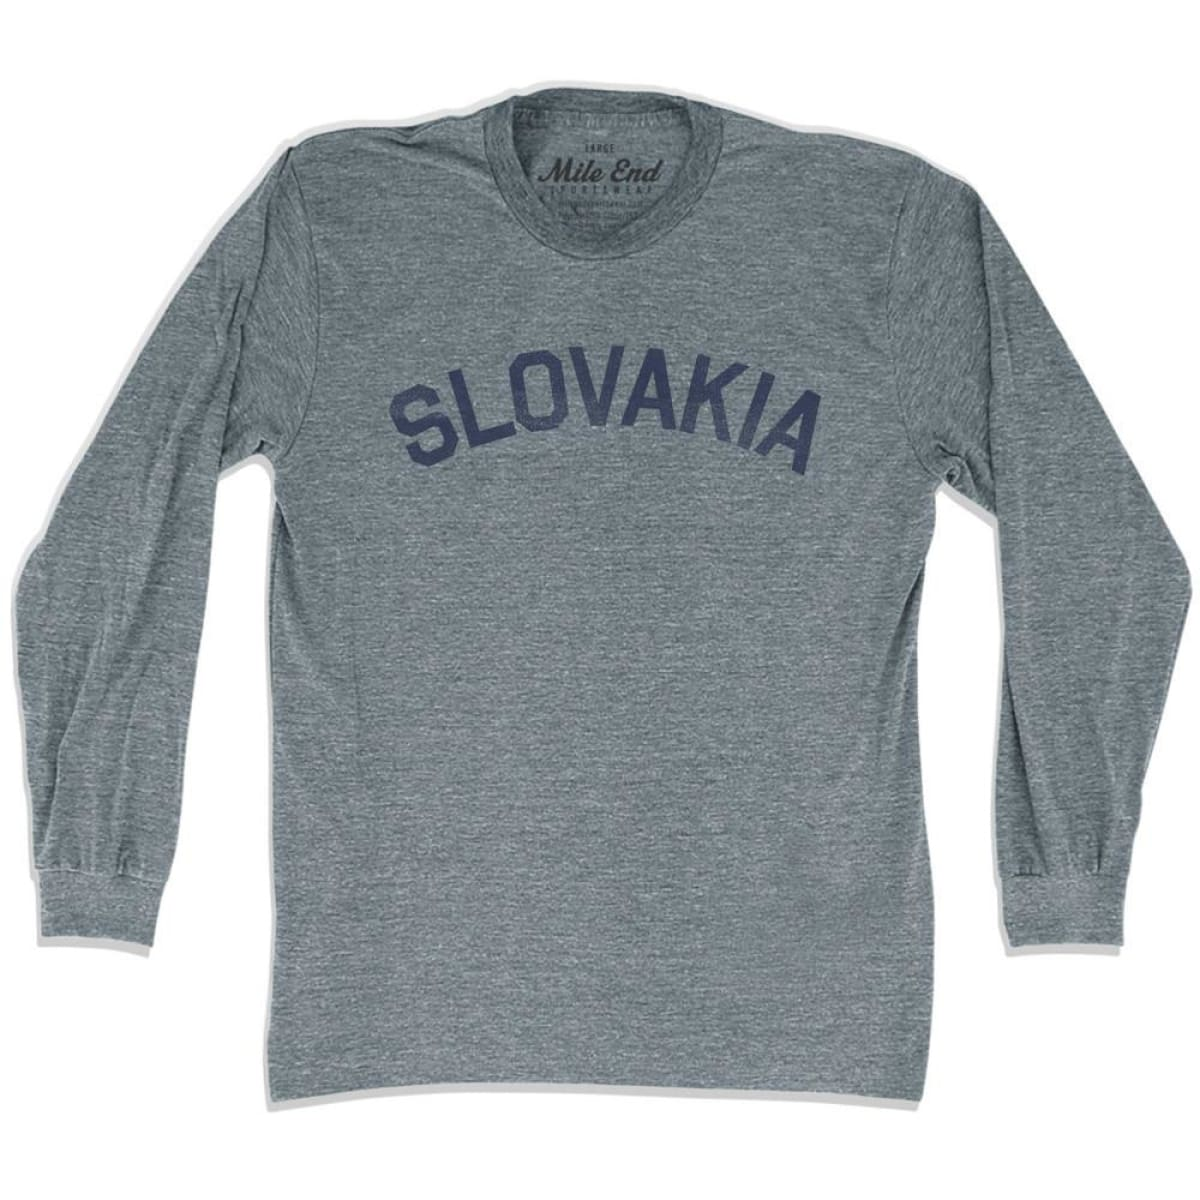 Slovakia City Vintage Long Sleeve T-shirt - Athletic Grey / Adult X-Small - Mile End City